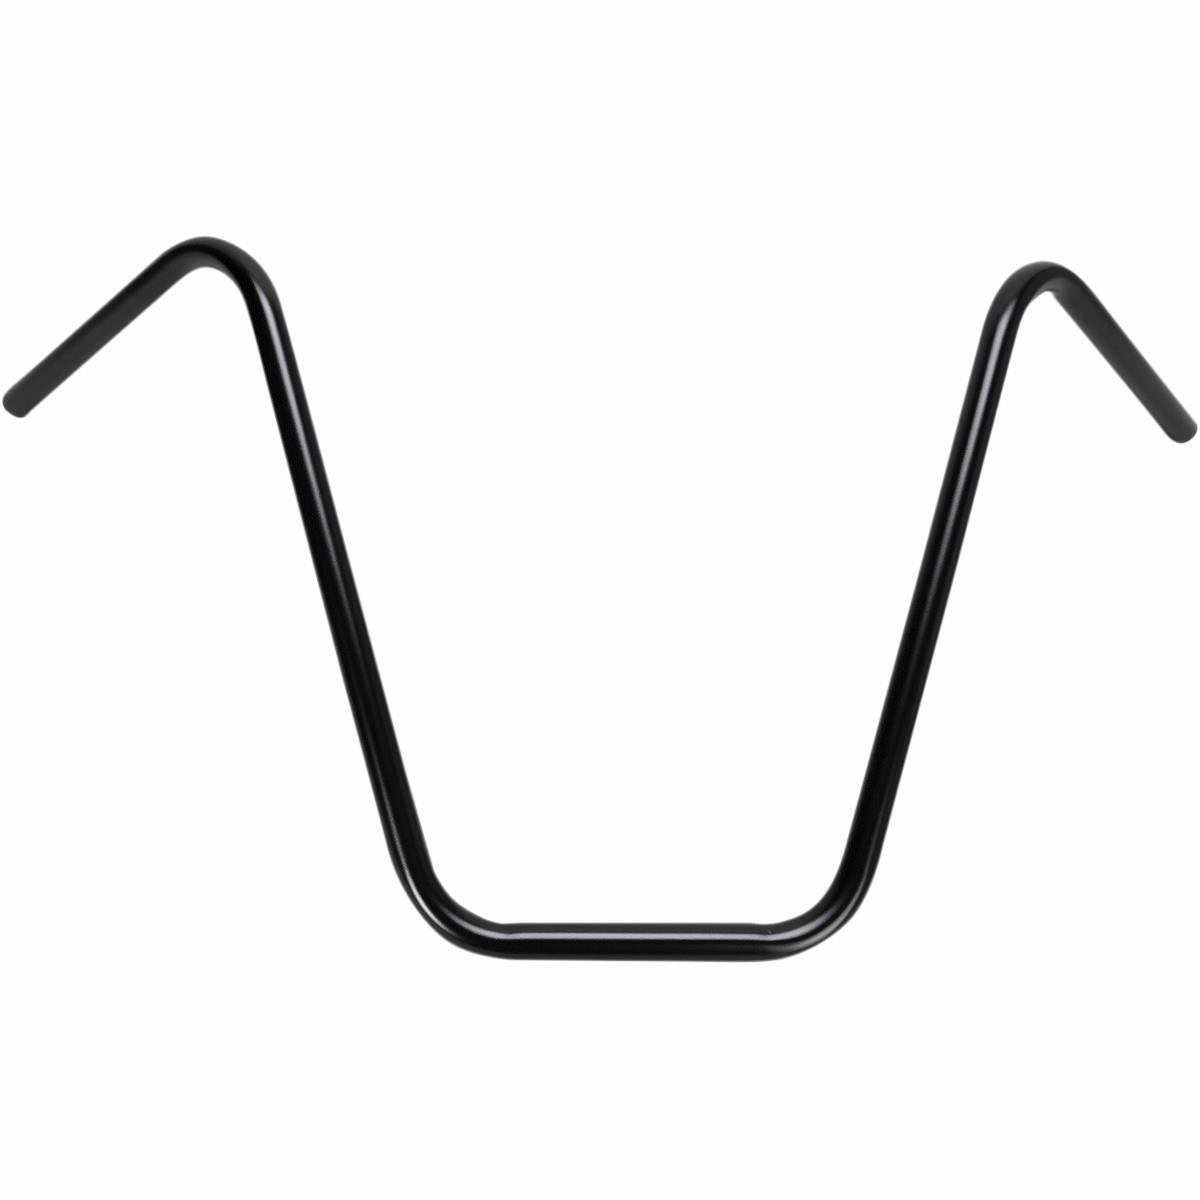 16' Ape Hanger 7/8' (22mm) Motorcycle Handlebars - Satin Black EMGO .